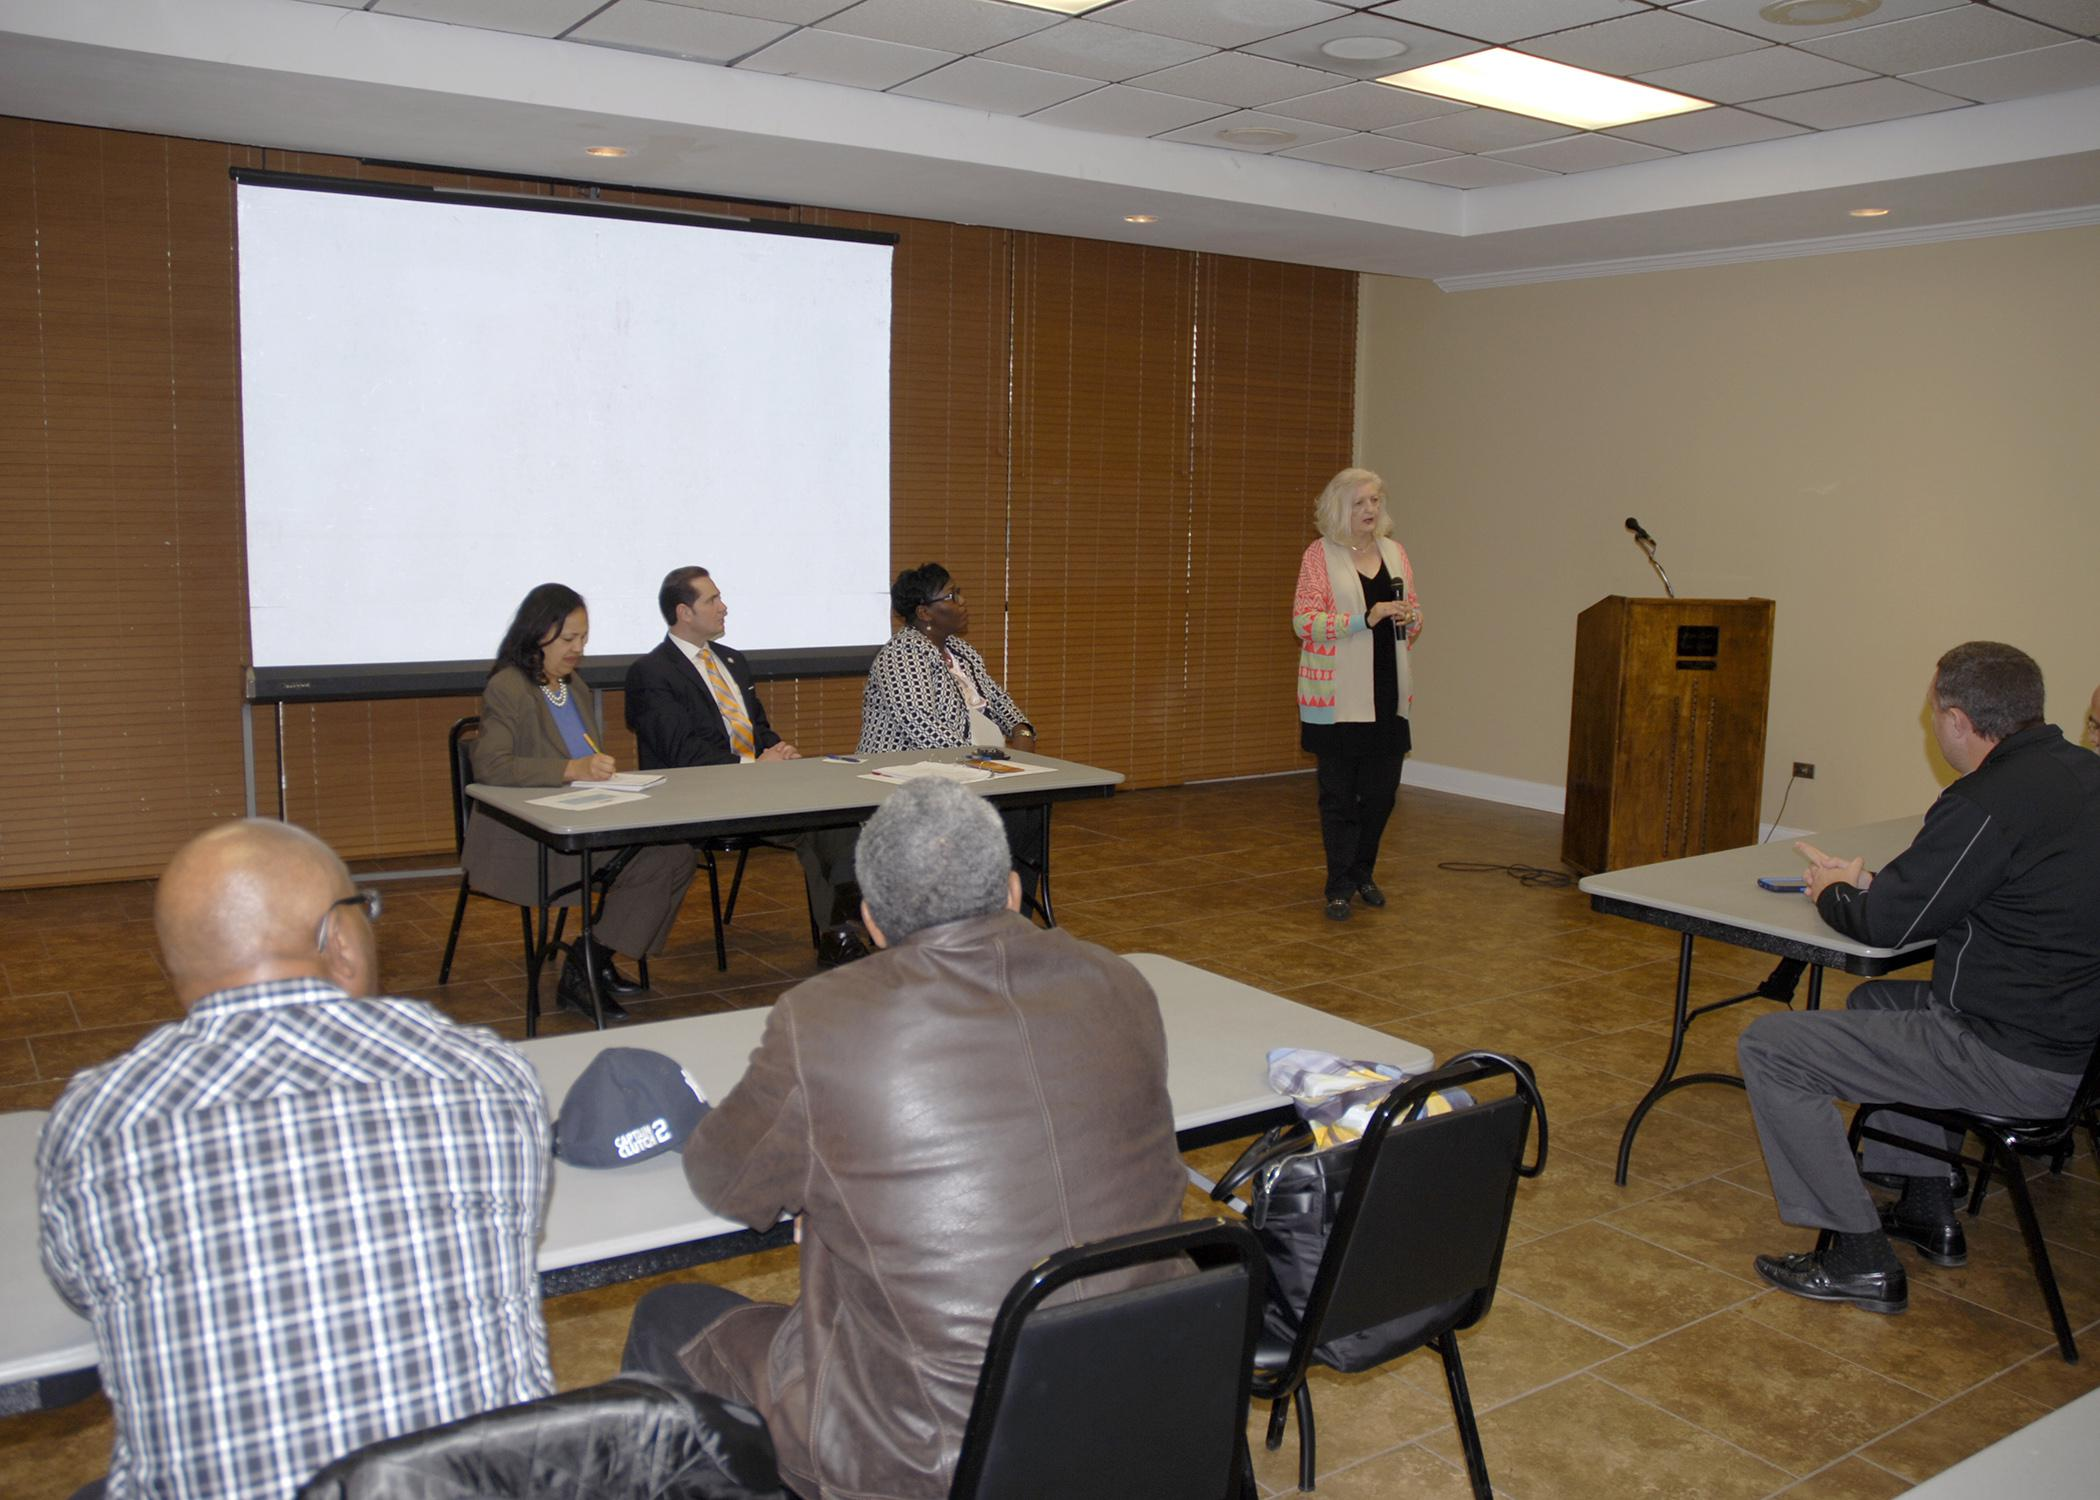 U.S. Department of Agriculture Under Secretary for Rural Development Lisa Mensah, seated at left, visited Mississippi Jan. 23, 2015 during her first trip since being confirmed for the post. (Photo by MSU Ag Communications/Nathan Gregory)